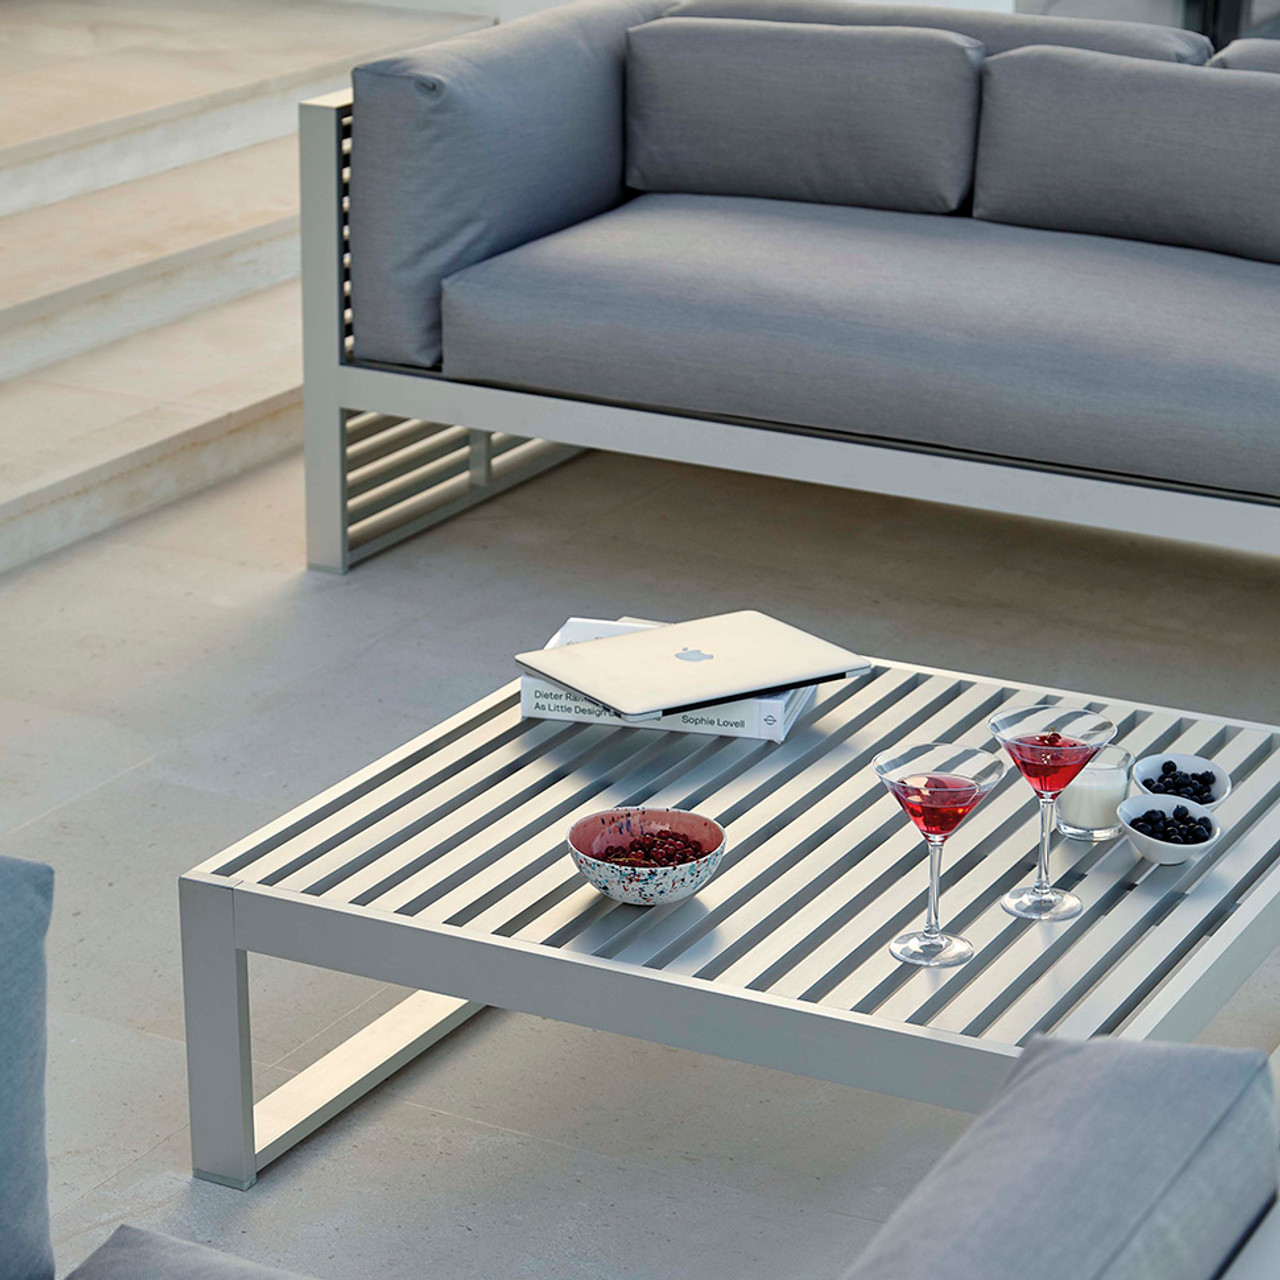 Gandiablasco Sofa Dna Modular 2 House And Yard